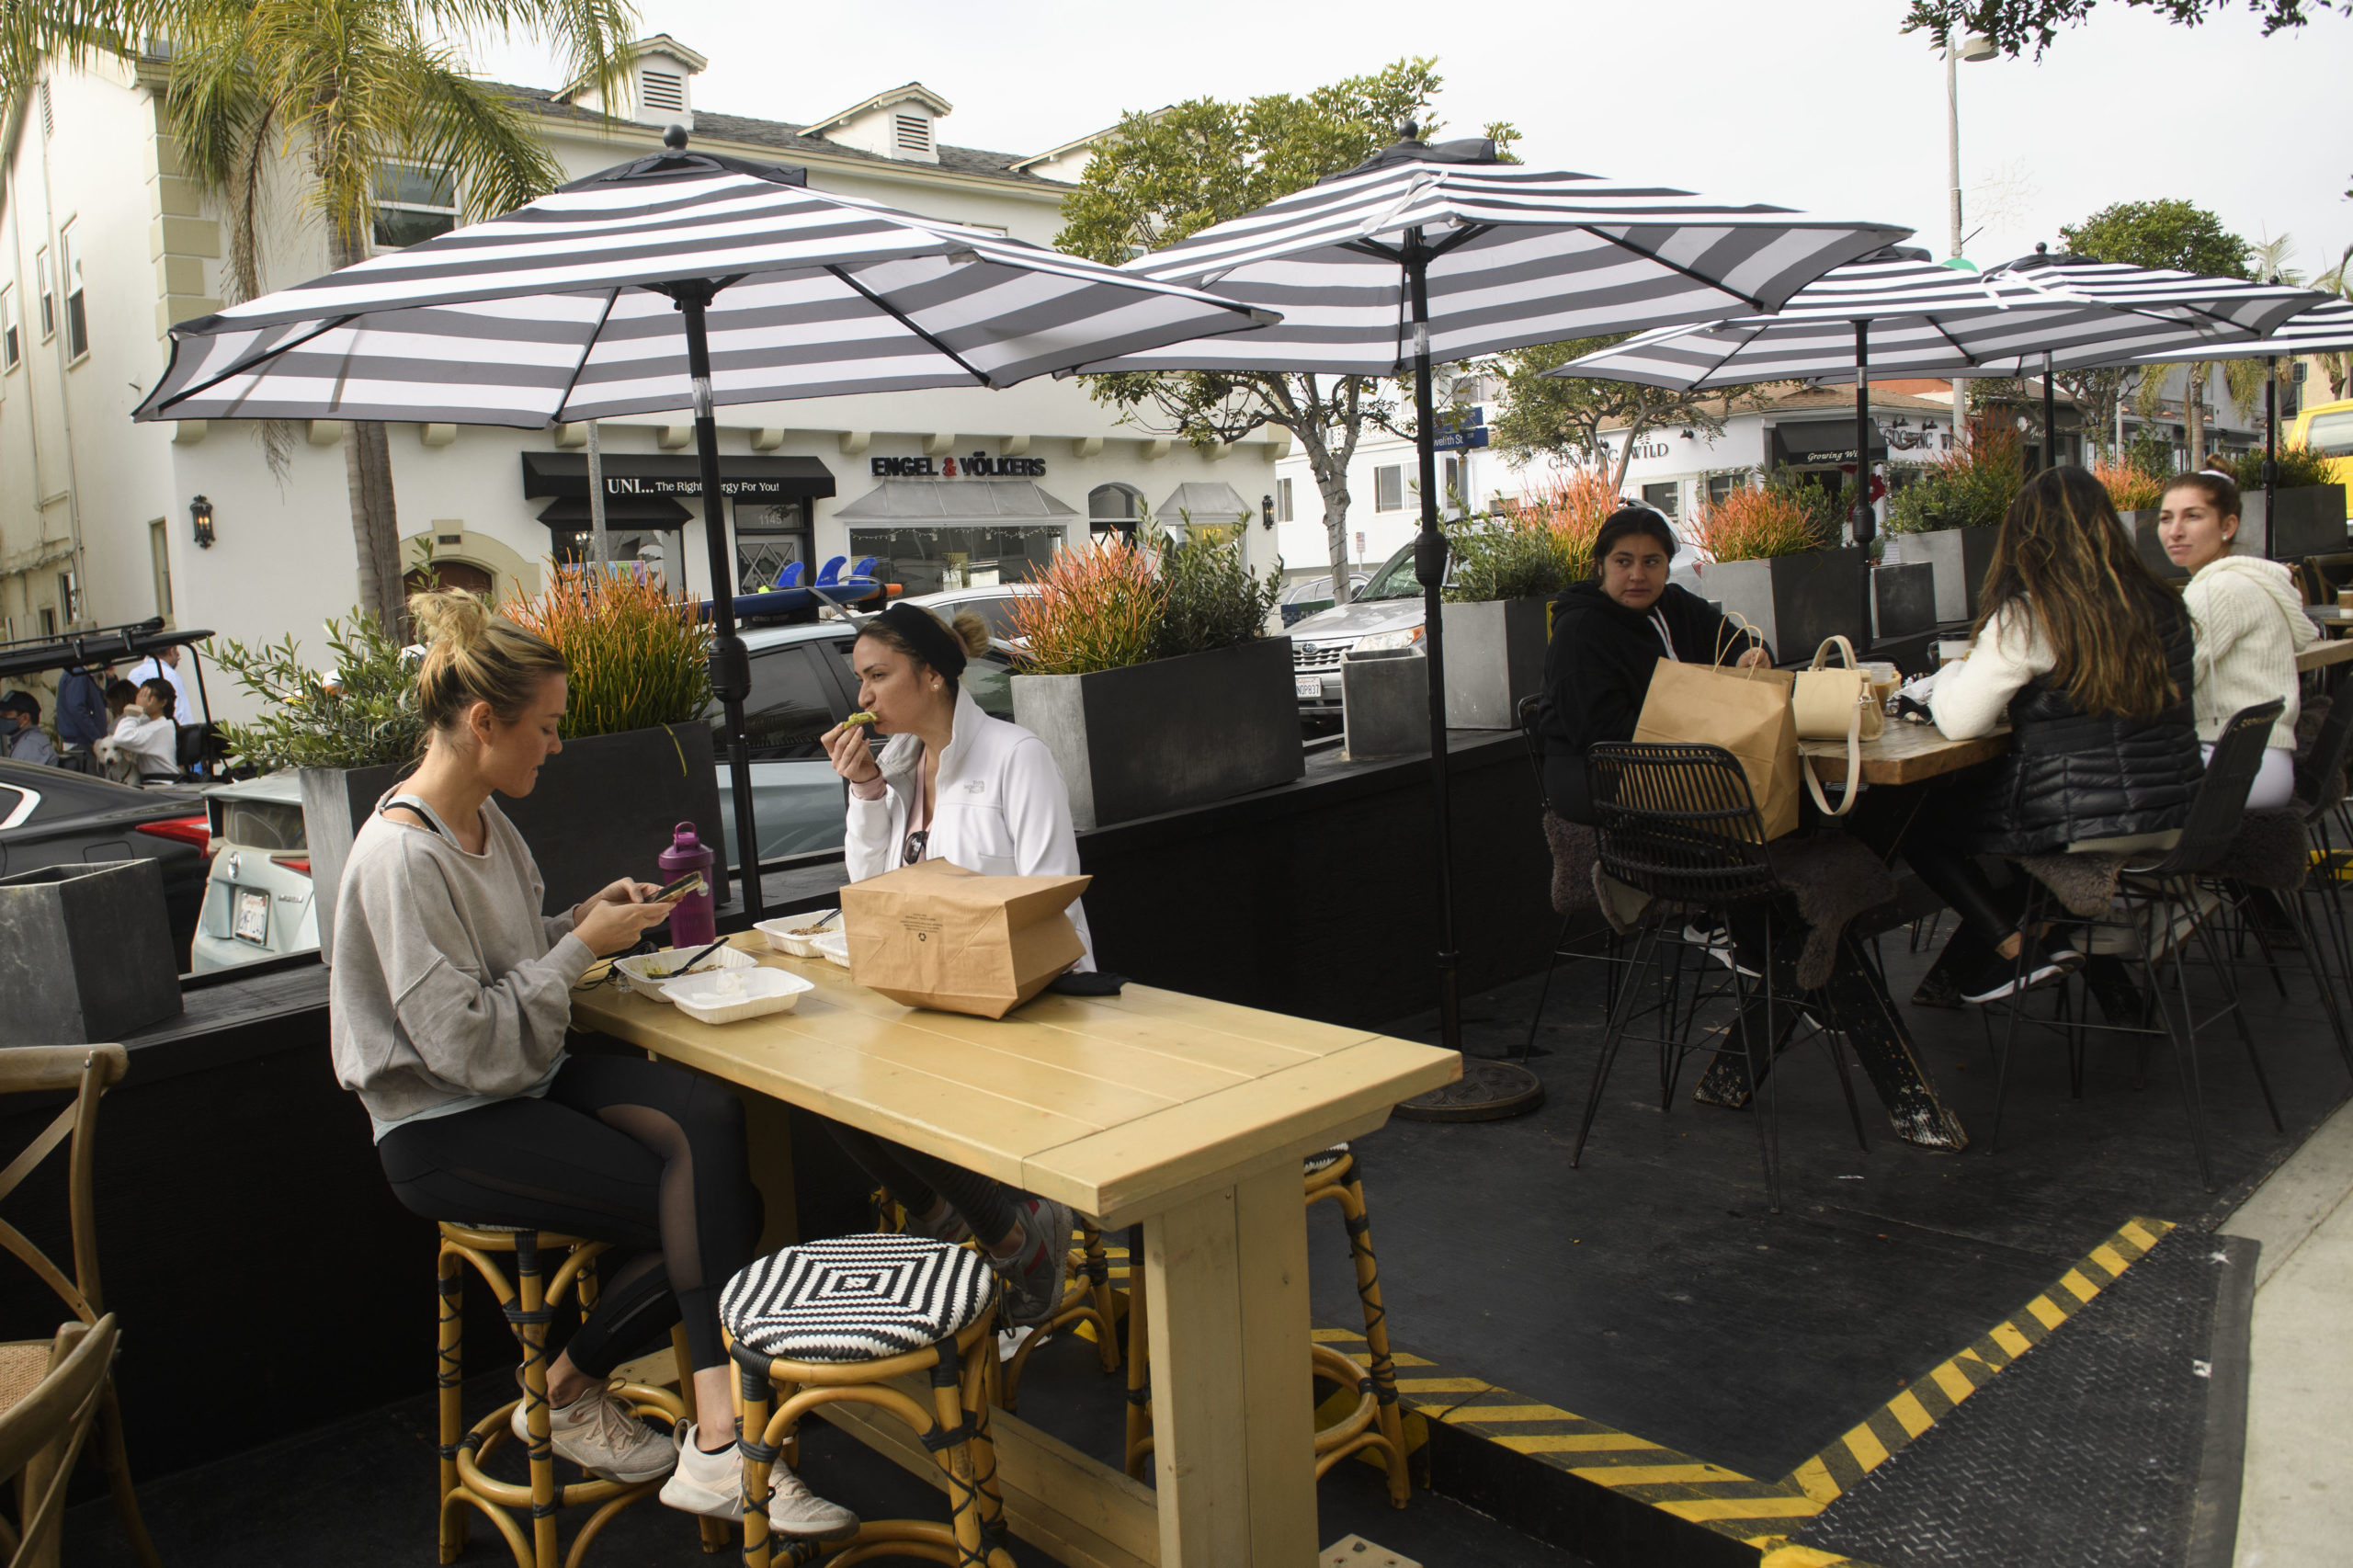 """People eat take-out food outdoors at a """"public parklet"""" due to Covid-19 restrictions on restaurant outdoor dining in Manhattan Beach, California, December 12, 2020. - According to California health officials, ICU bed capacity in the Southern California region has dropped to 5.3% as more restrictive orders are imposed to prevent hospitals from being overrun. (Photo by Patrick T. Fallon / AFP) (Photo by PATRICK T. FALLON/AFP via Getty Images)"""